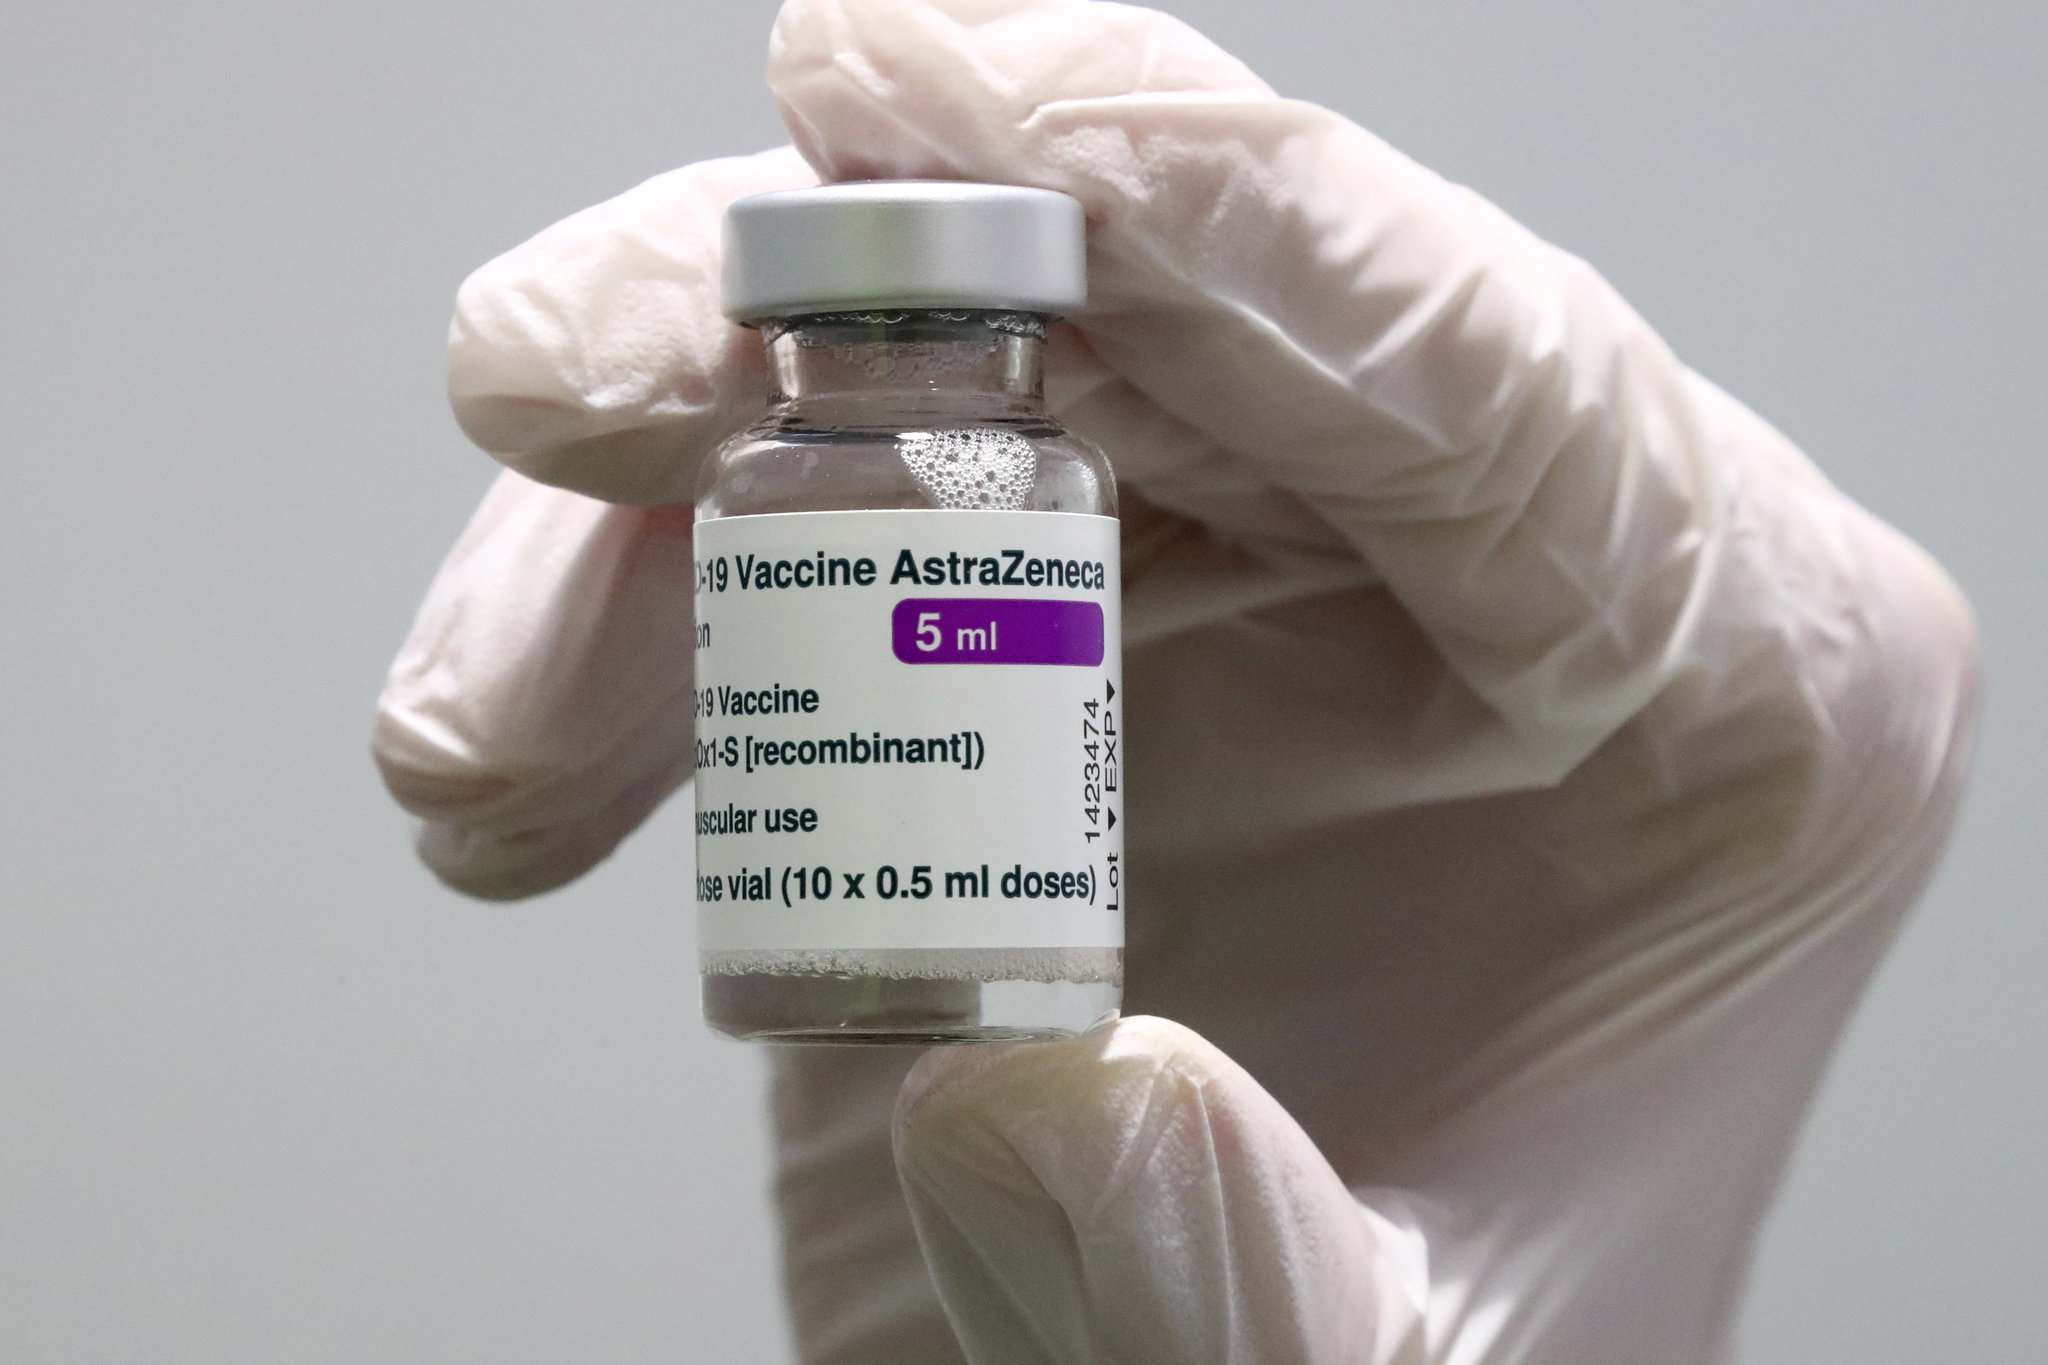 Clinics and pharmacies received a new shipment of 54,000 doses of the AstraZeneca vaccine, which will be administered to peopel 55 to 64 with serious health conditions, and anyone over the age of 64. (Matthias Schrader / The Associated Press files)</p>